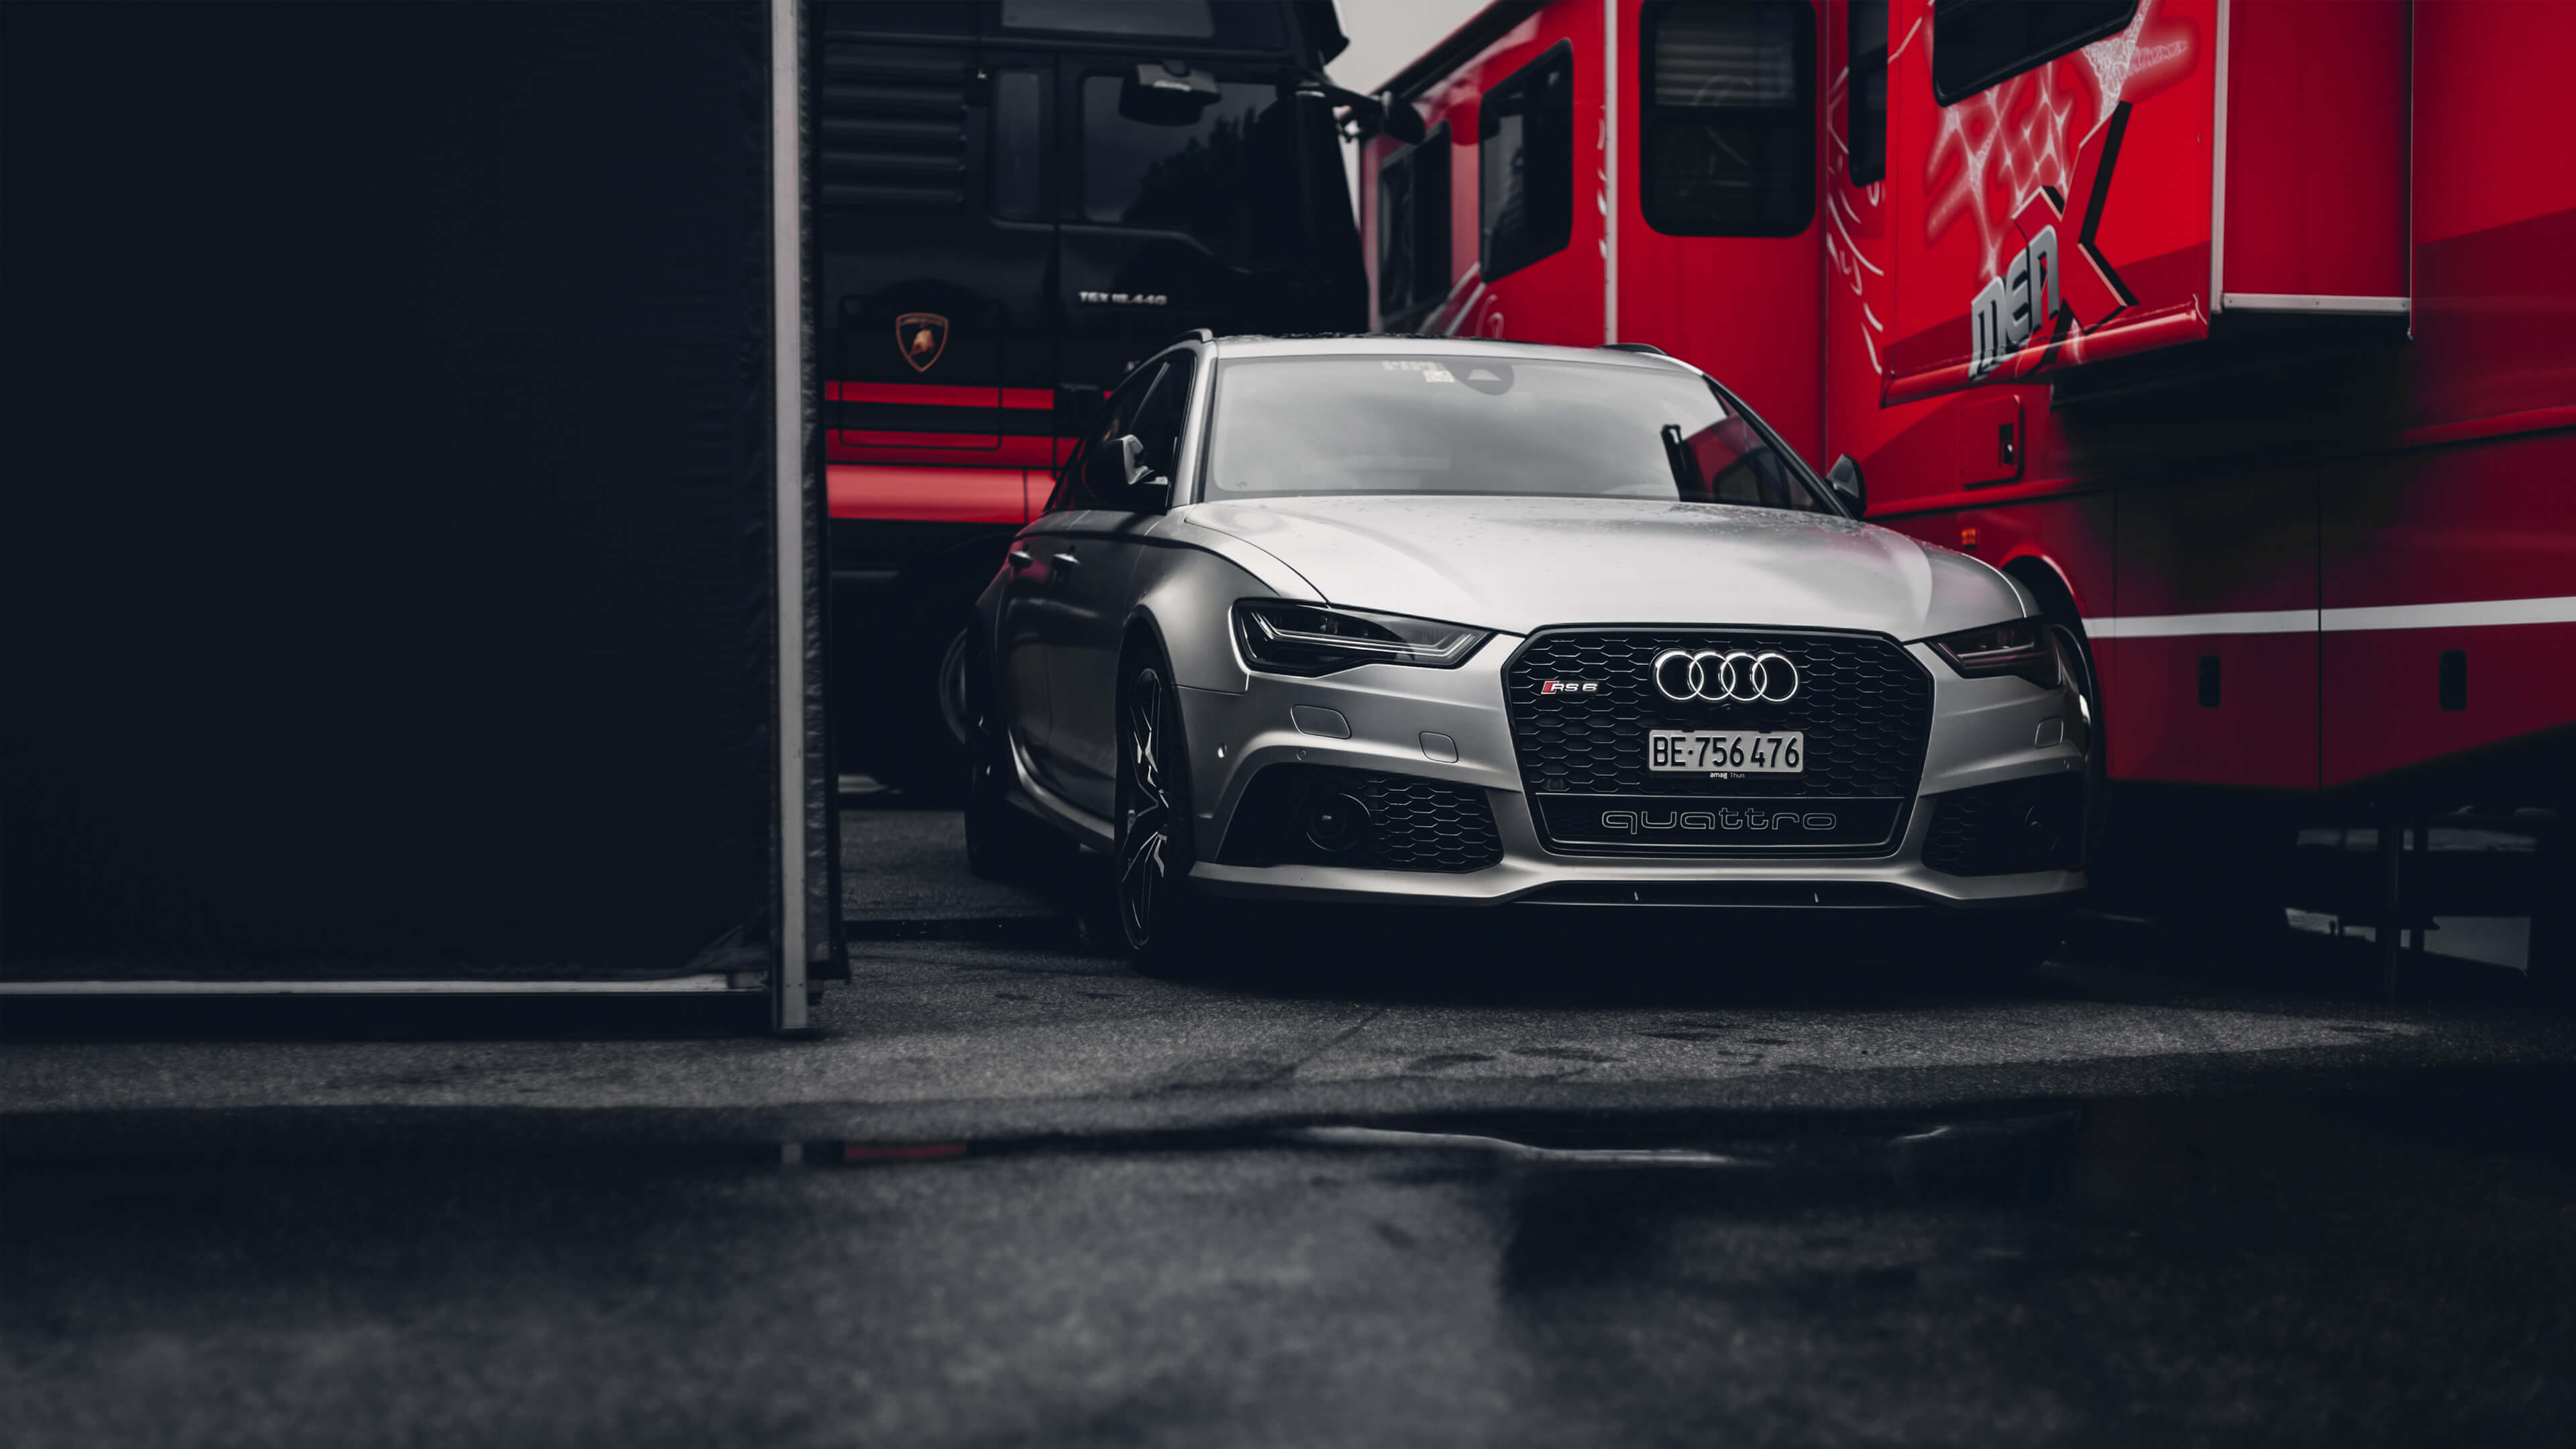 Audi 4k Wallpapers Top Free Audi 4k Backgrounds